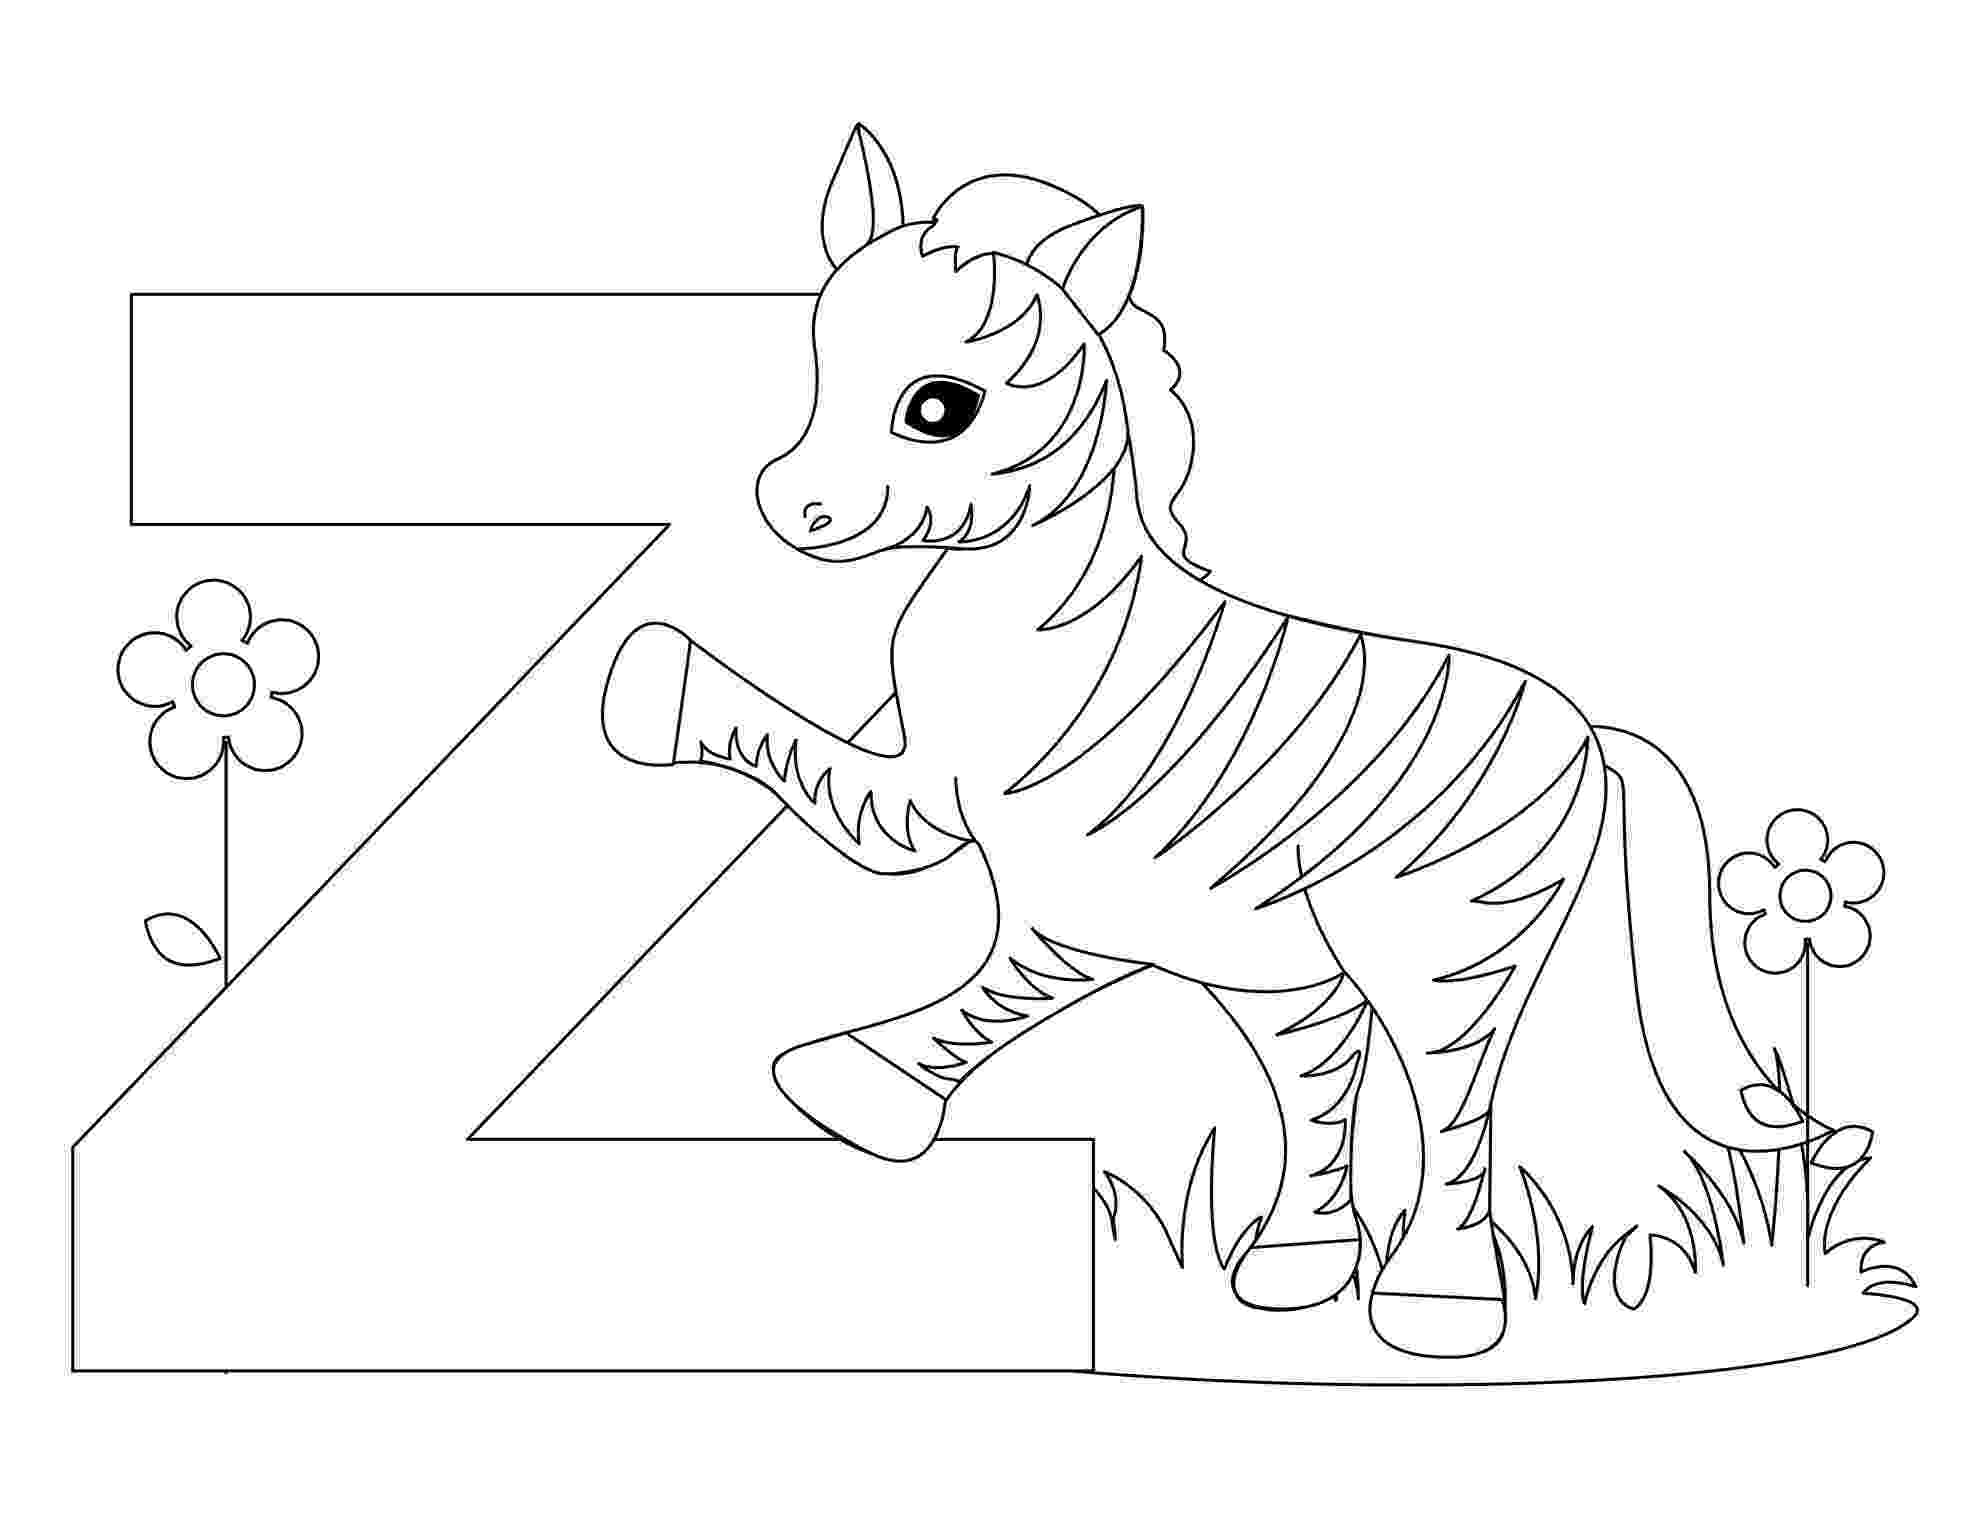 printable coloring alphabet letters free printable alphabet coloring pages for kids best letters printable alphabet coloring 1 1